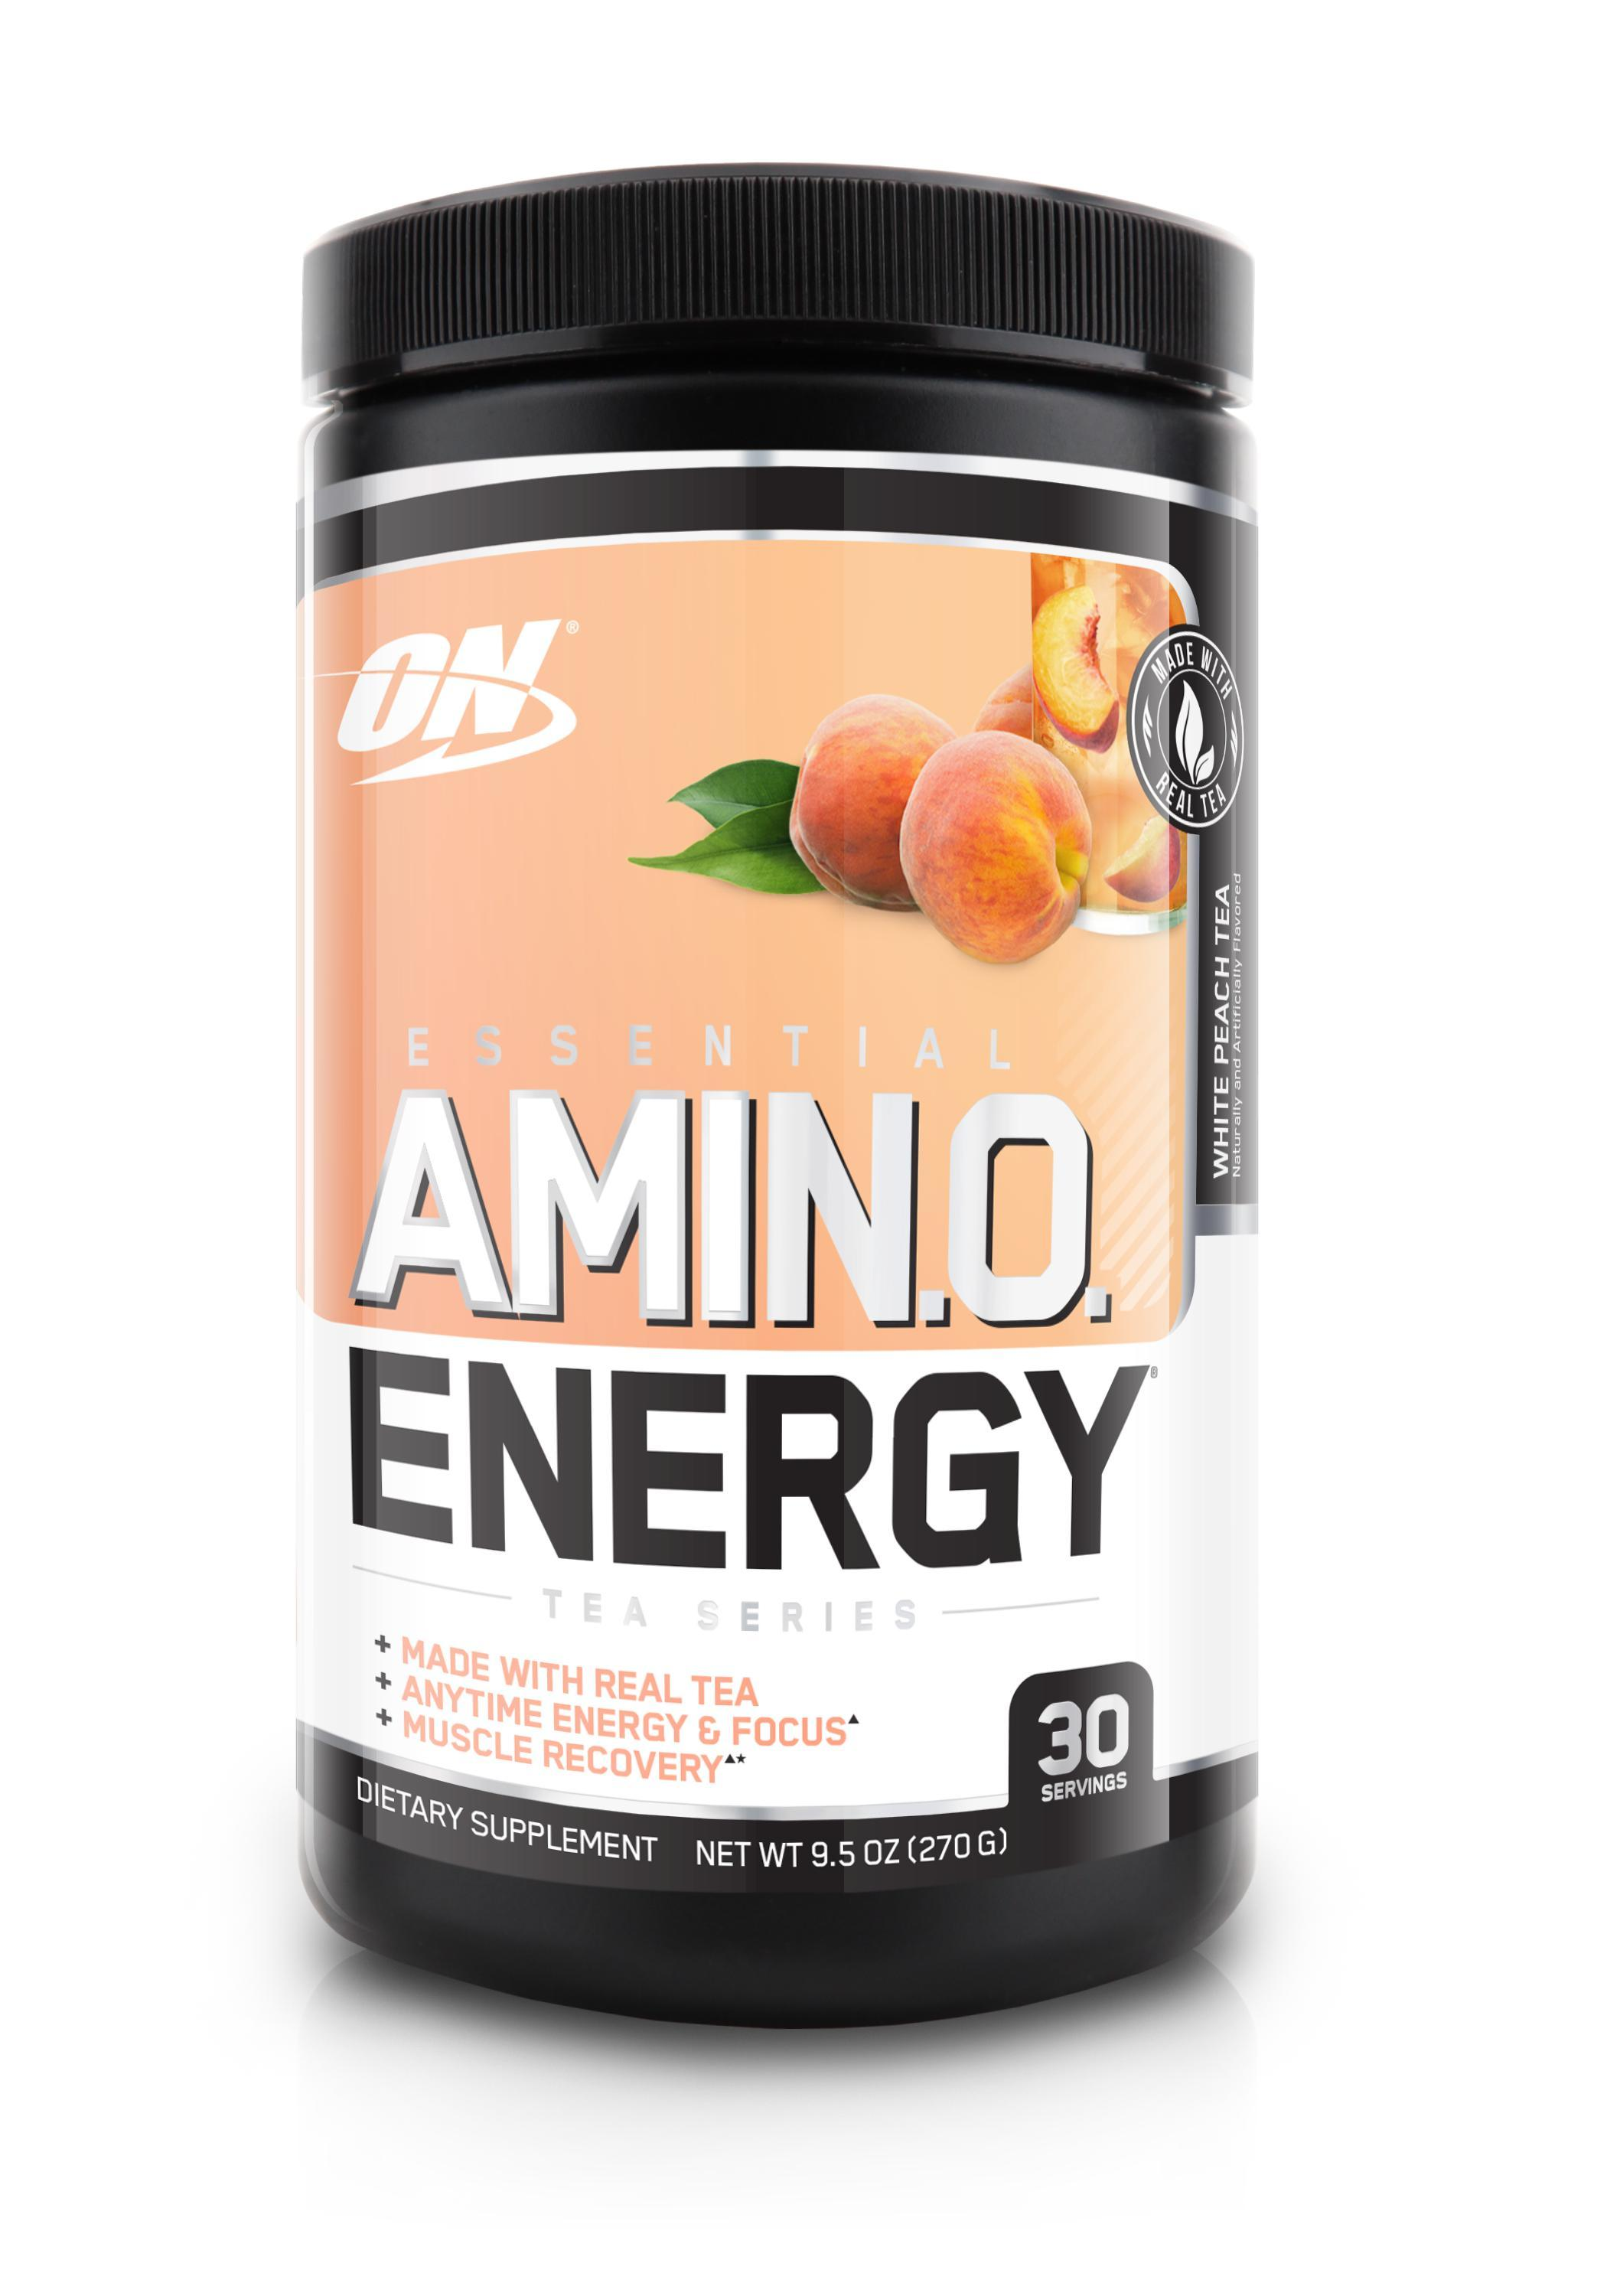 ON Essential Amino Energy Tea Series-Sports Nutrition - Amino Acid-Optimum Nutrition-30 Serves-White Peach Tea-Thrive Health and Nutrition